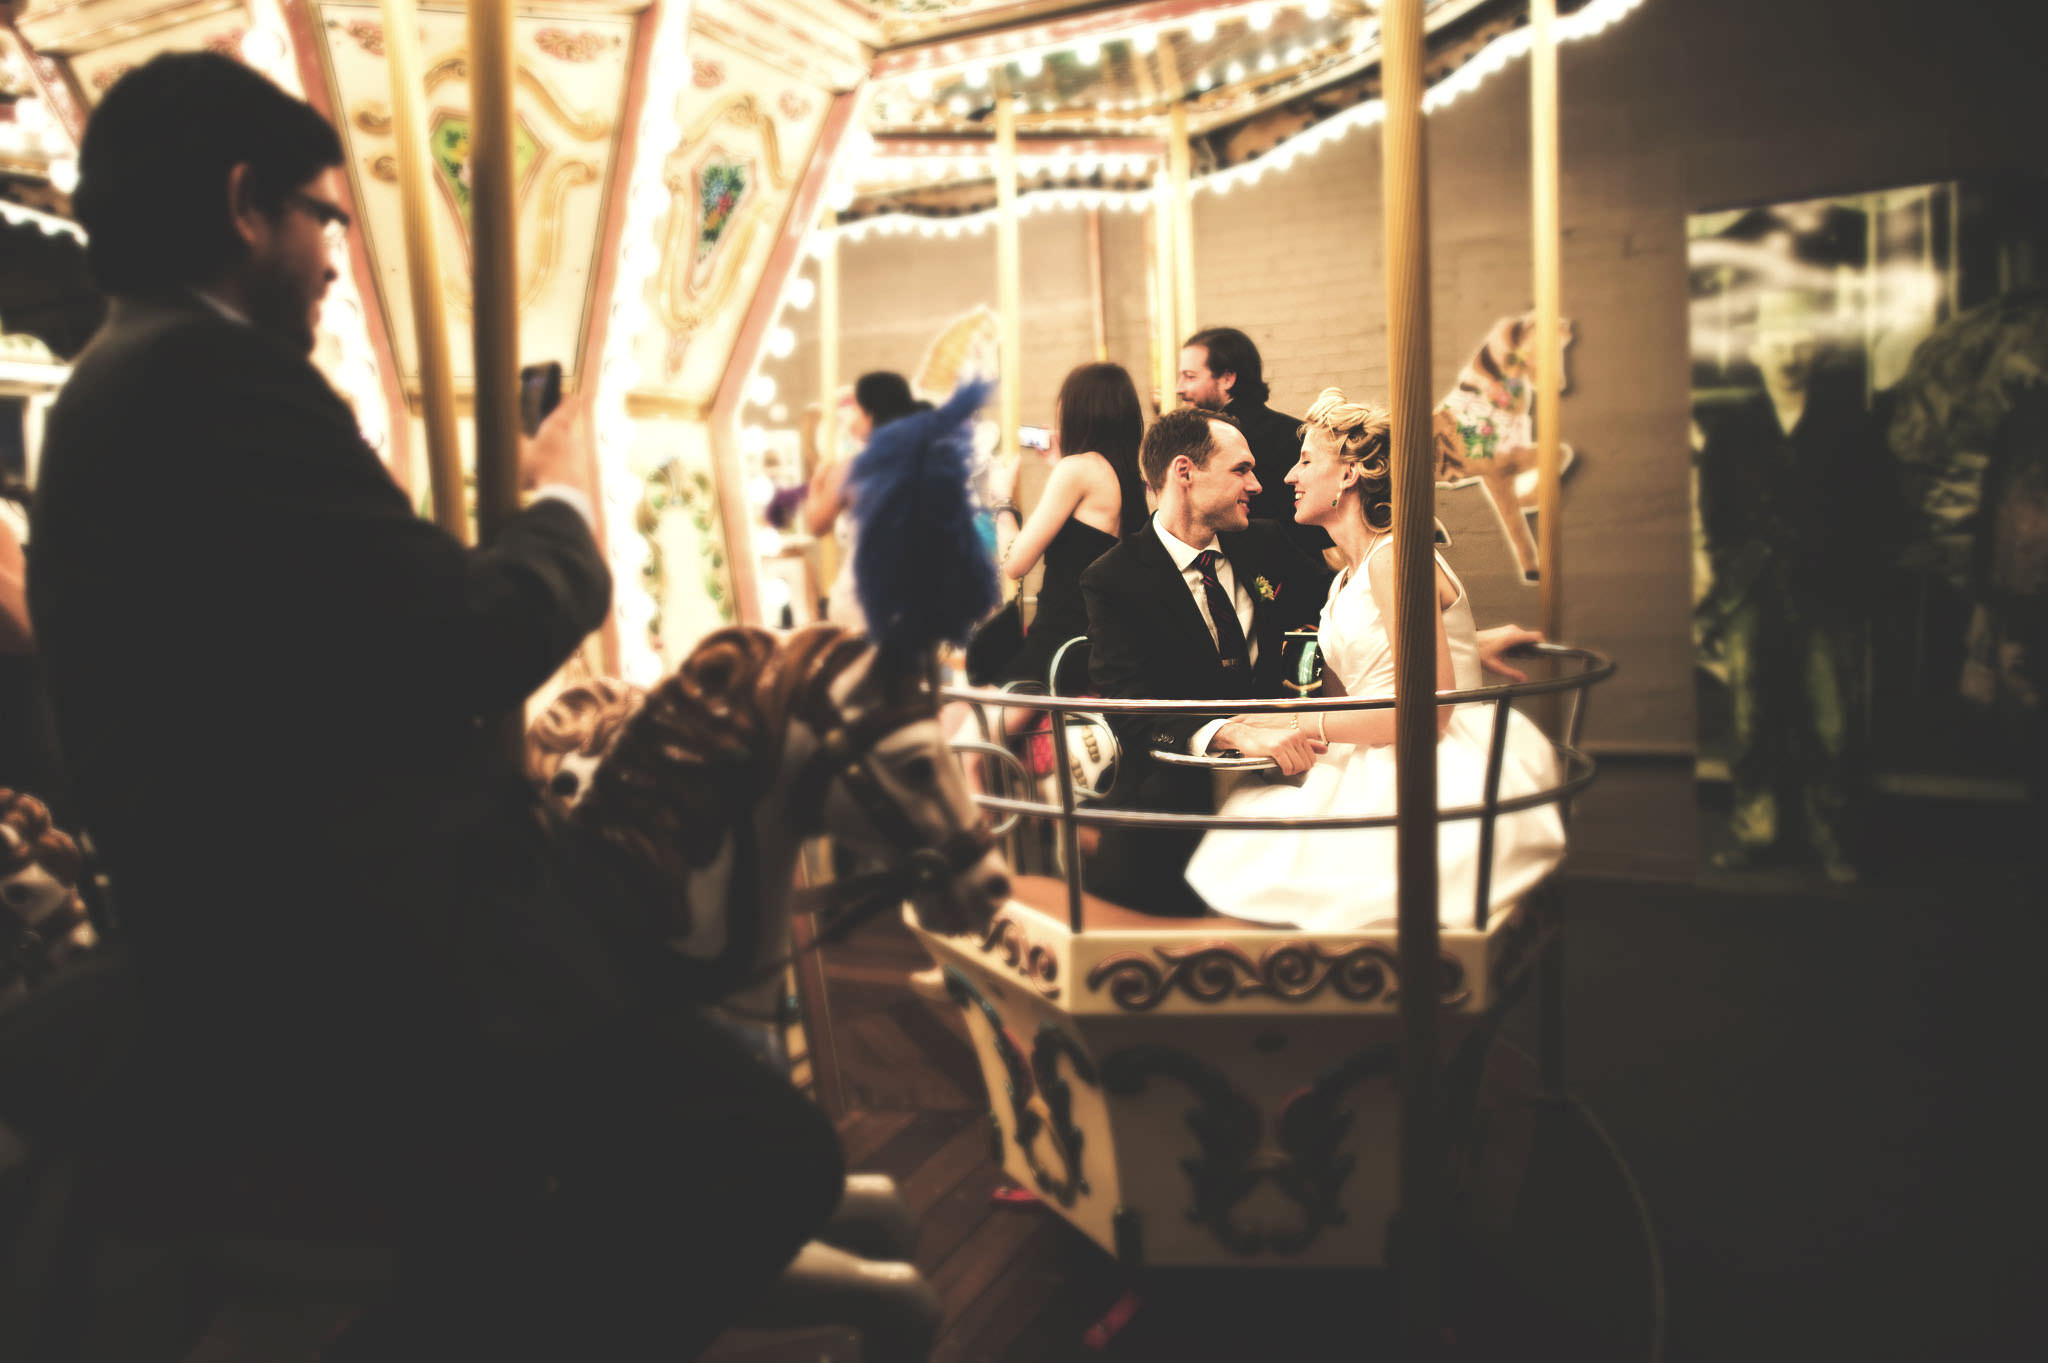 Wedding photographer, Merry Go Round